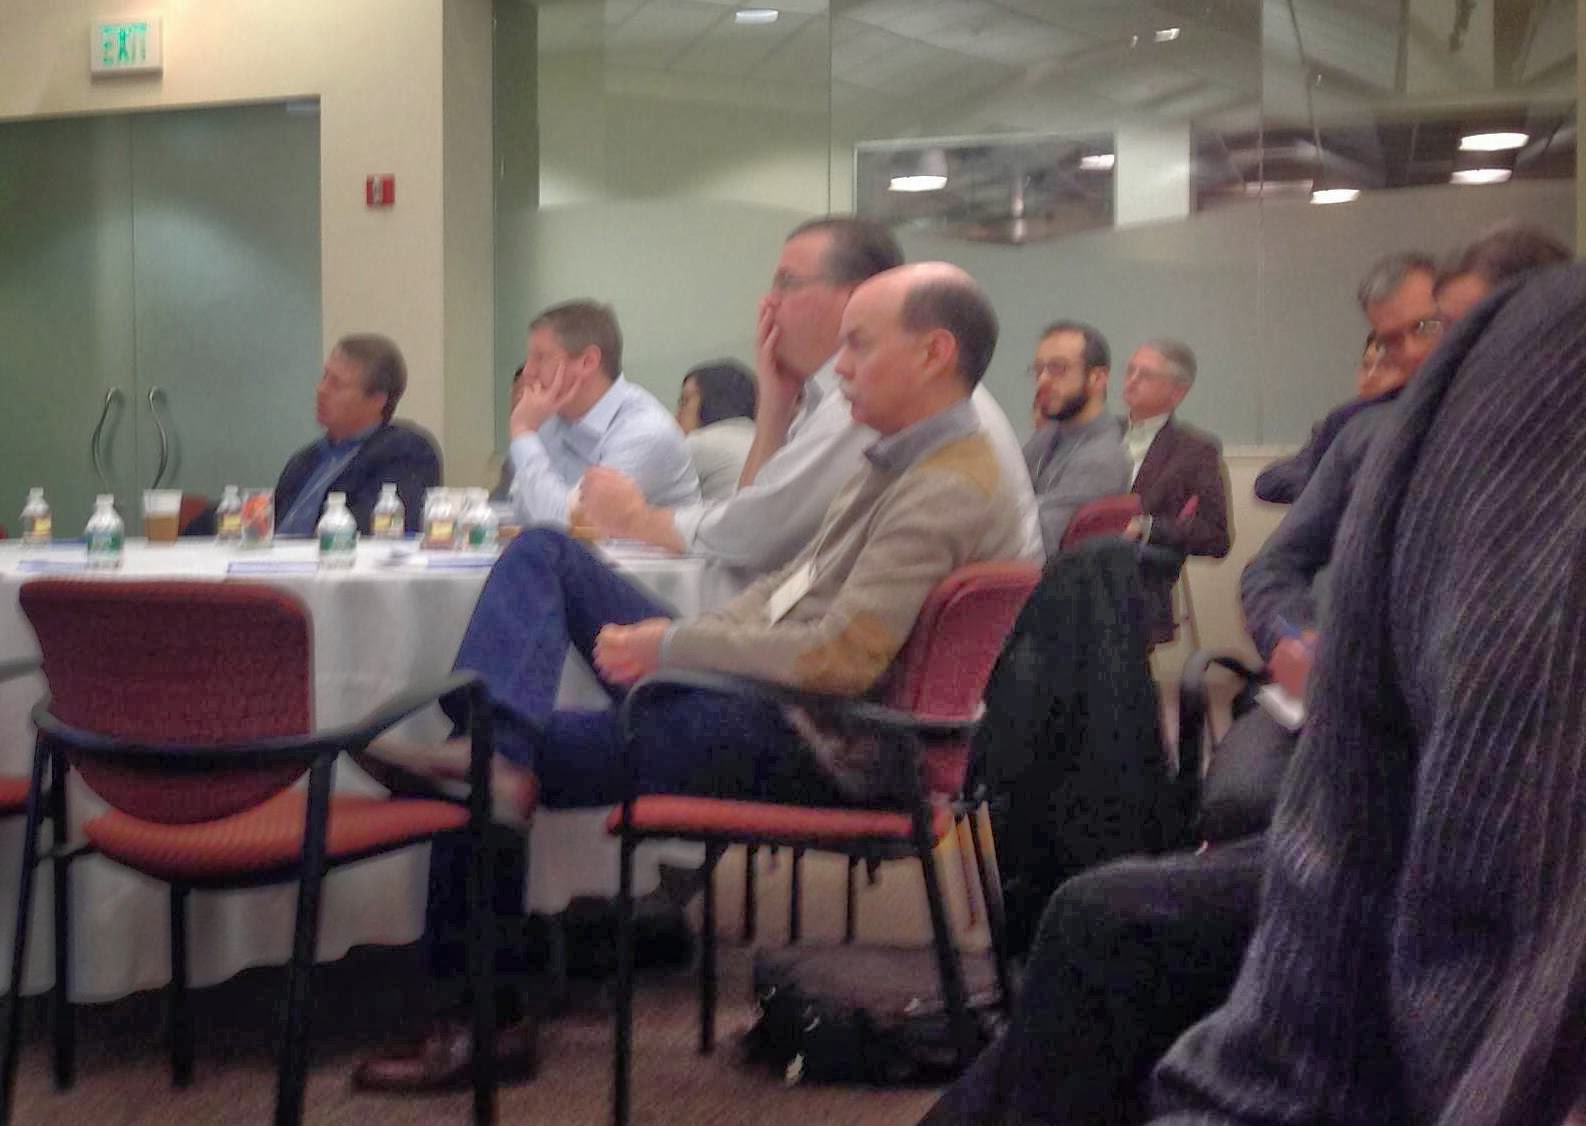 brady urology at johns hopkins hospital 2014 theodore deweese and alan partin listen to presentations during the research updates